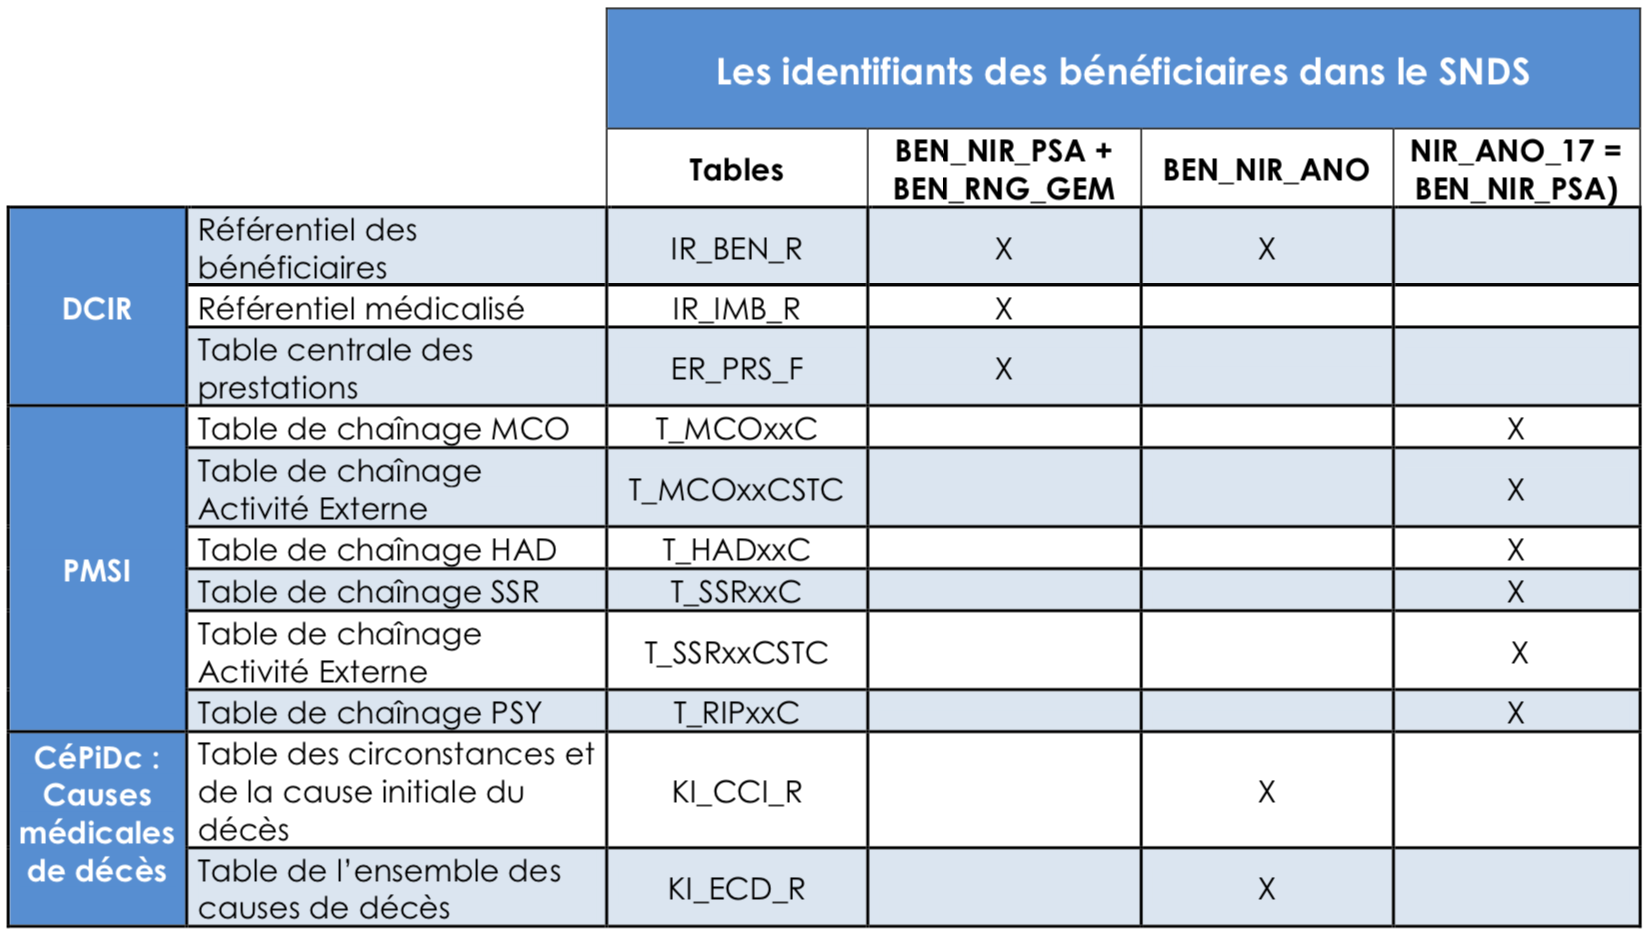 tableau_identifiants_beneficiaires